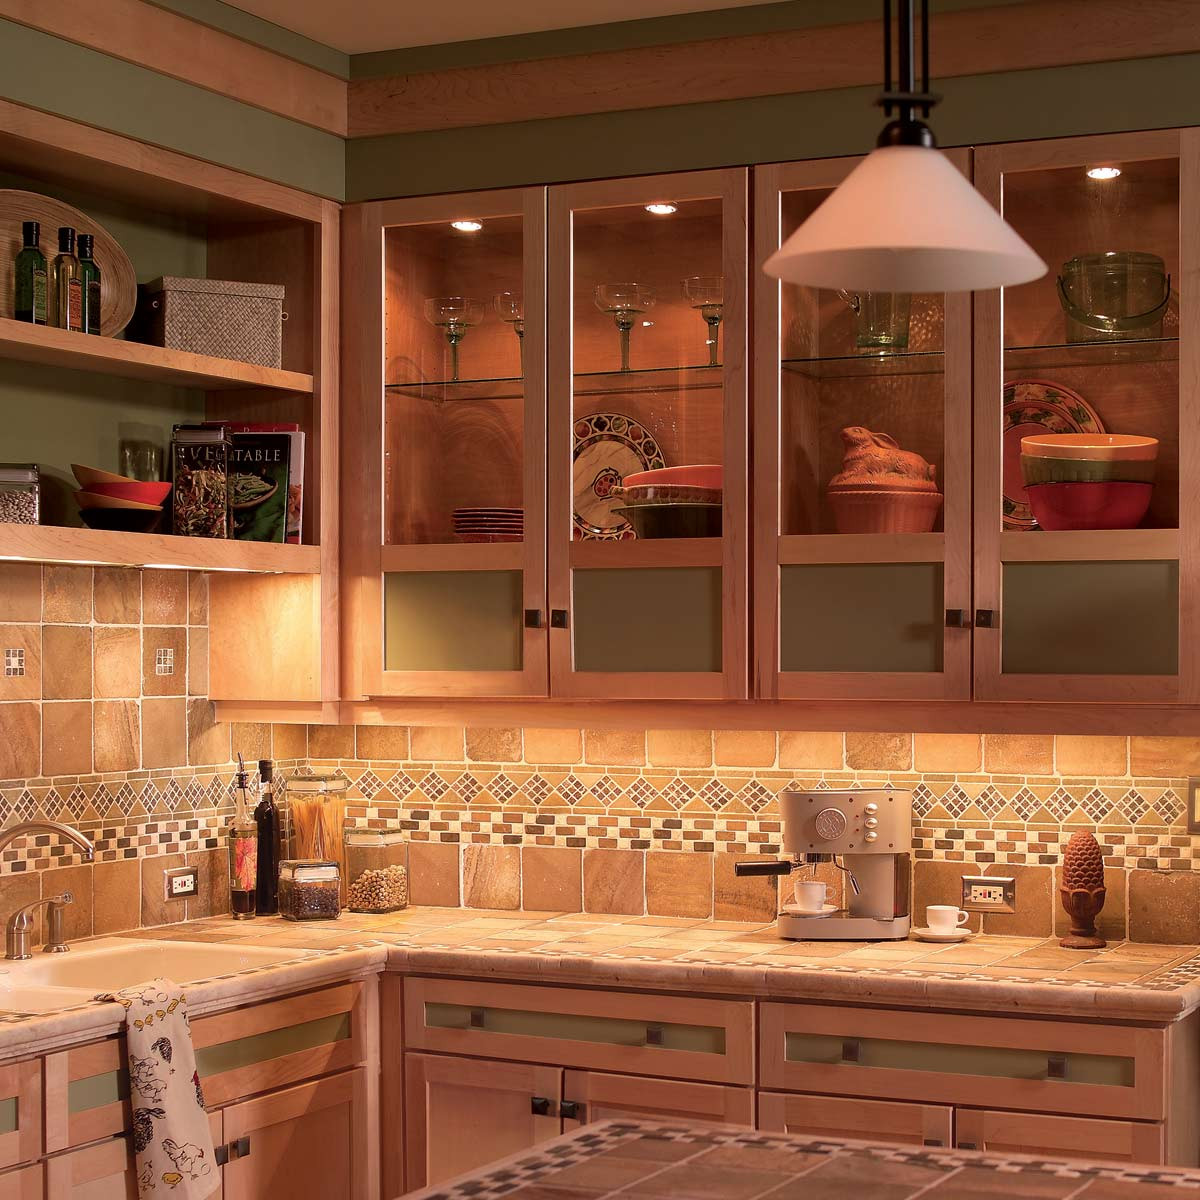 Kitchen Under Cabinet Lighting Options  How to Install Under Cabinet Lighting in Your Kitchen